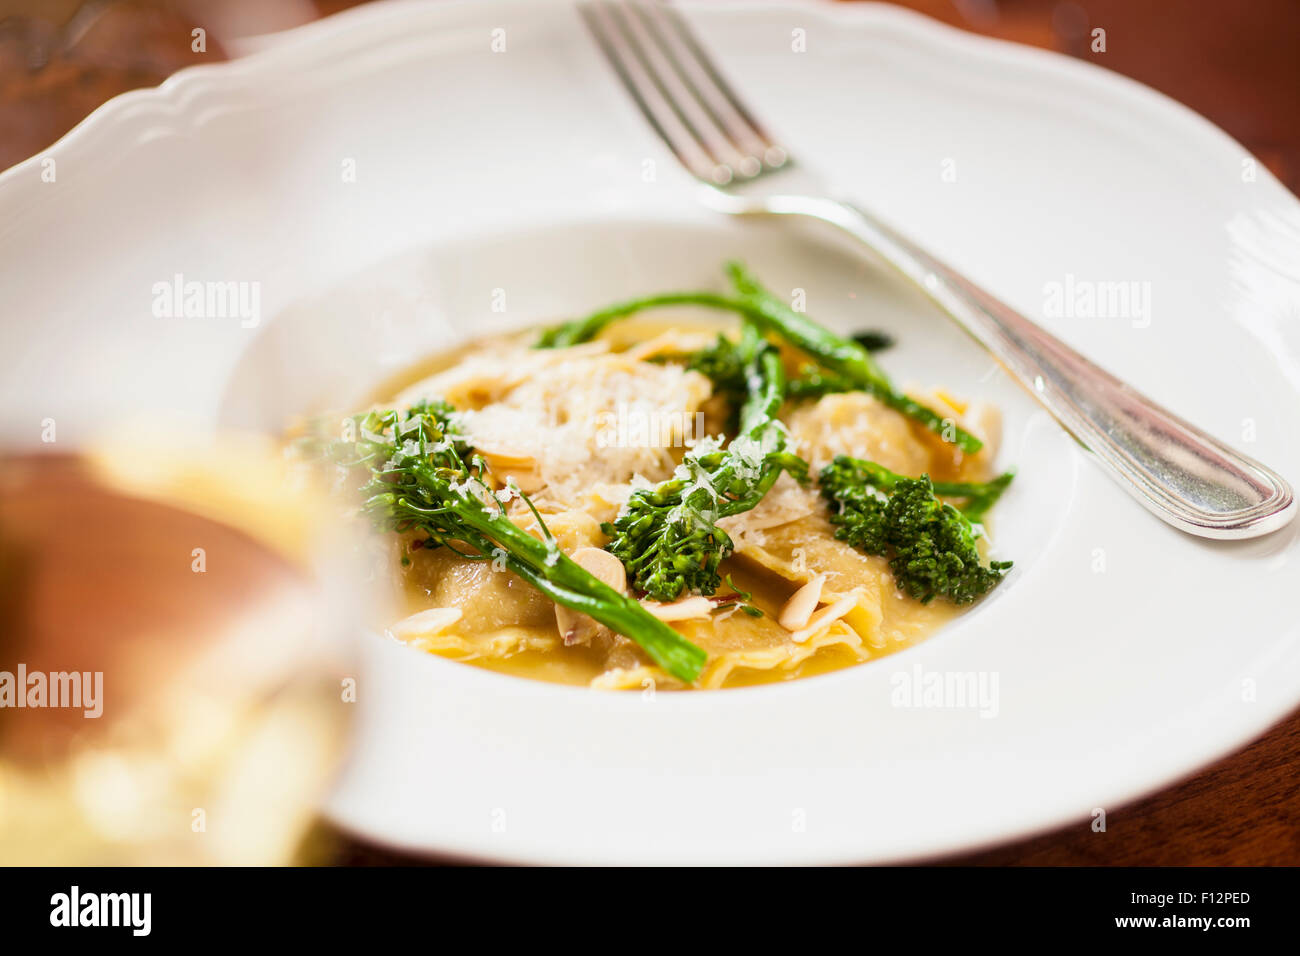 Italian sausage ravioli with sage and broccolini and a glass of chardonnay, Bella Vista Restaurant, Biltmore Hotel, - Stock Image